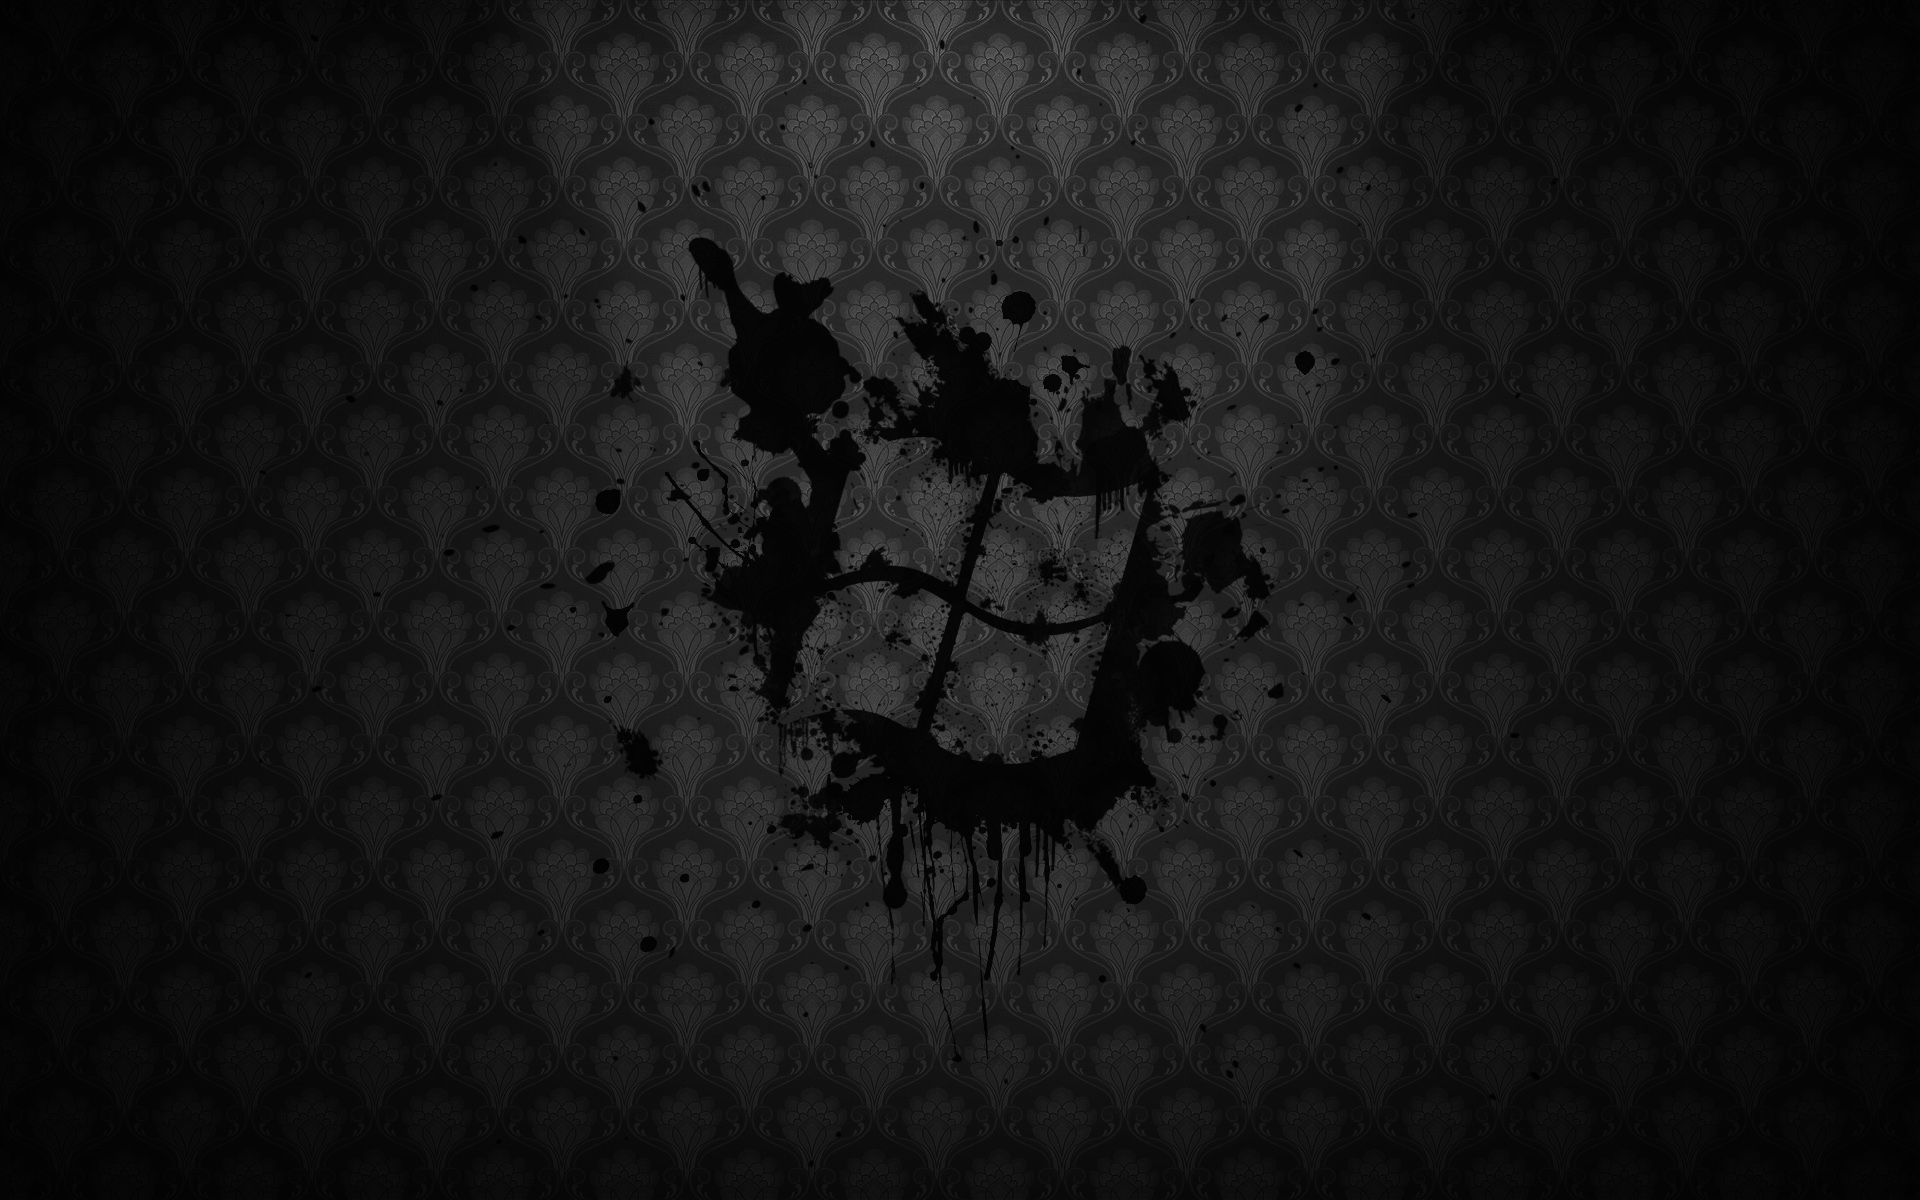 Black windows - Wallpaper Windows Splatter Vista 1920x1200